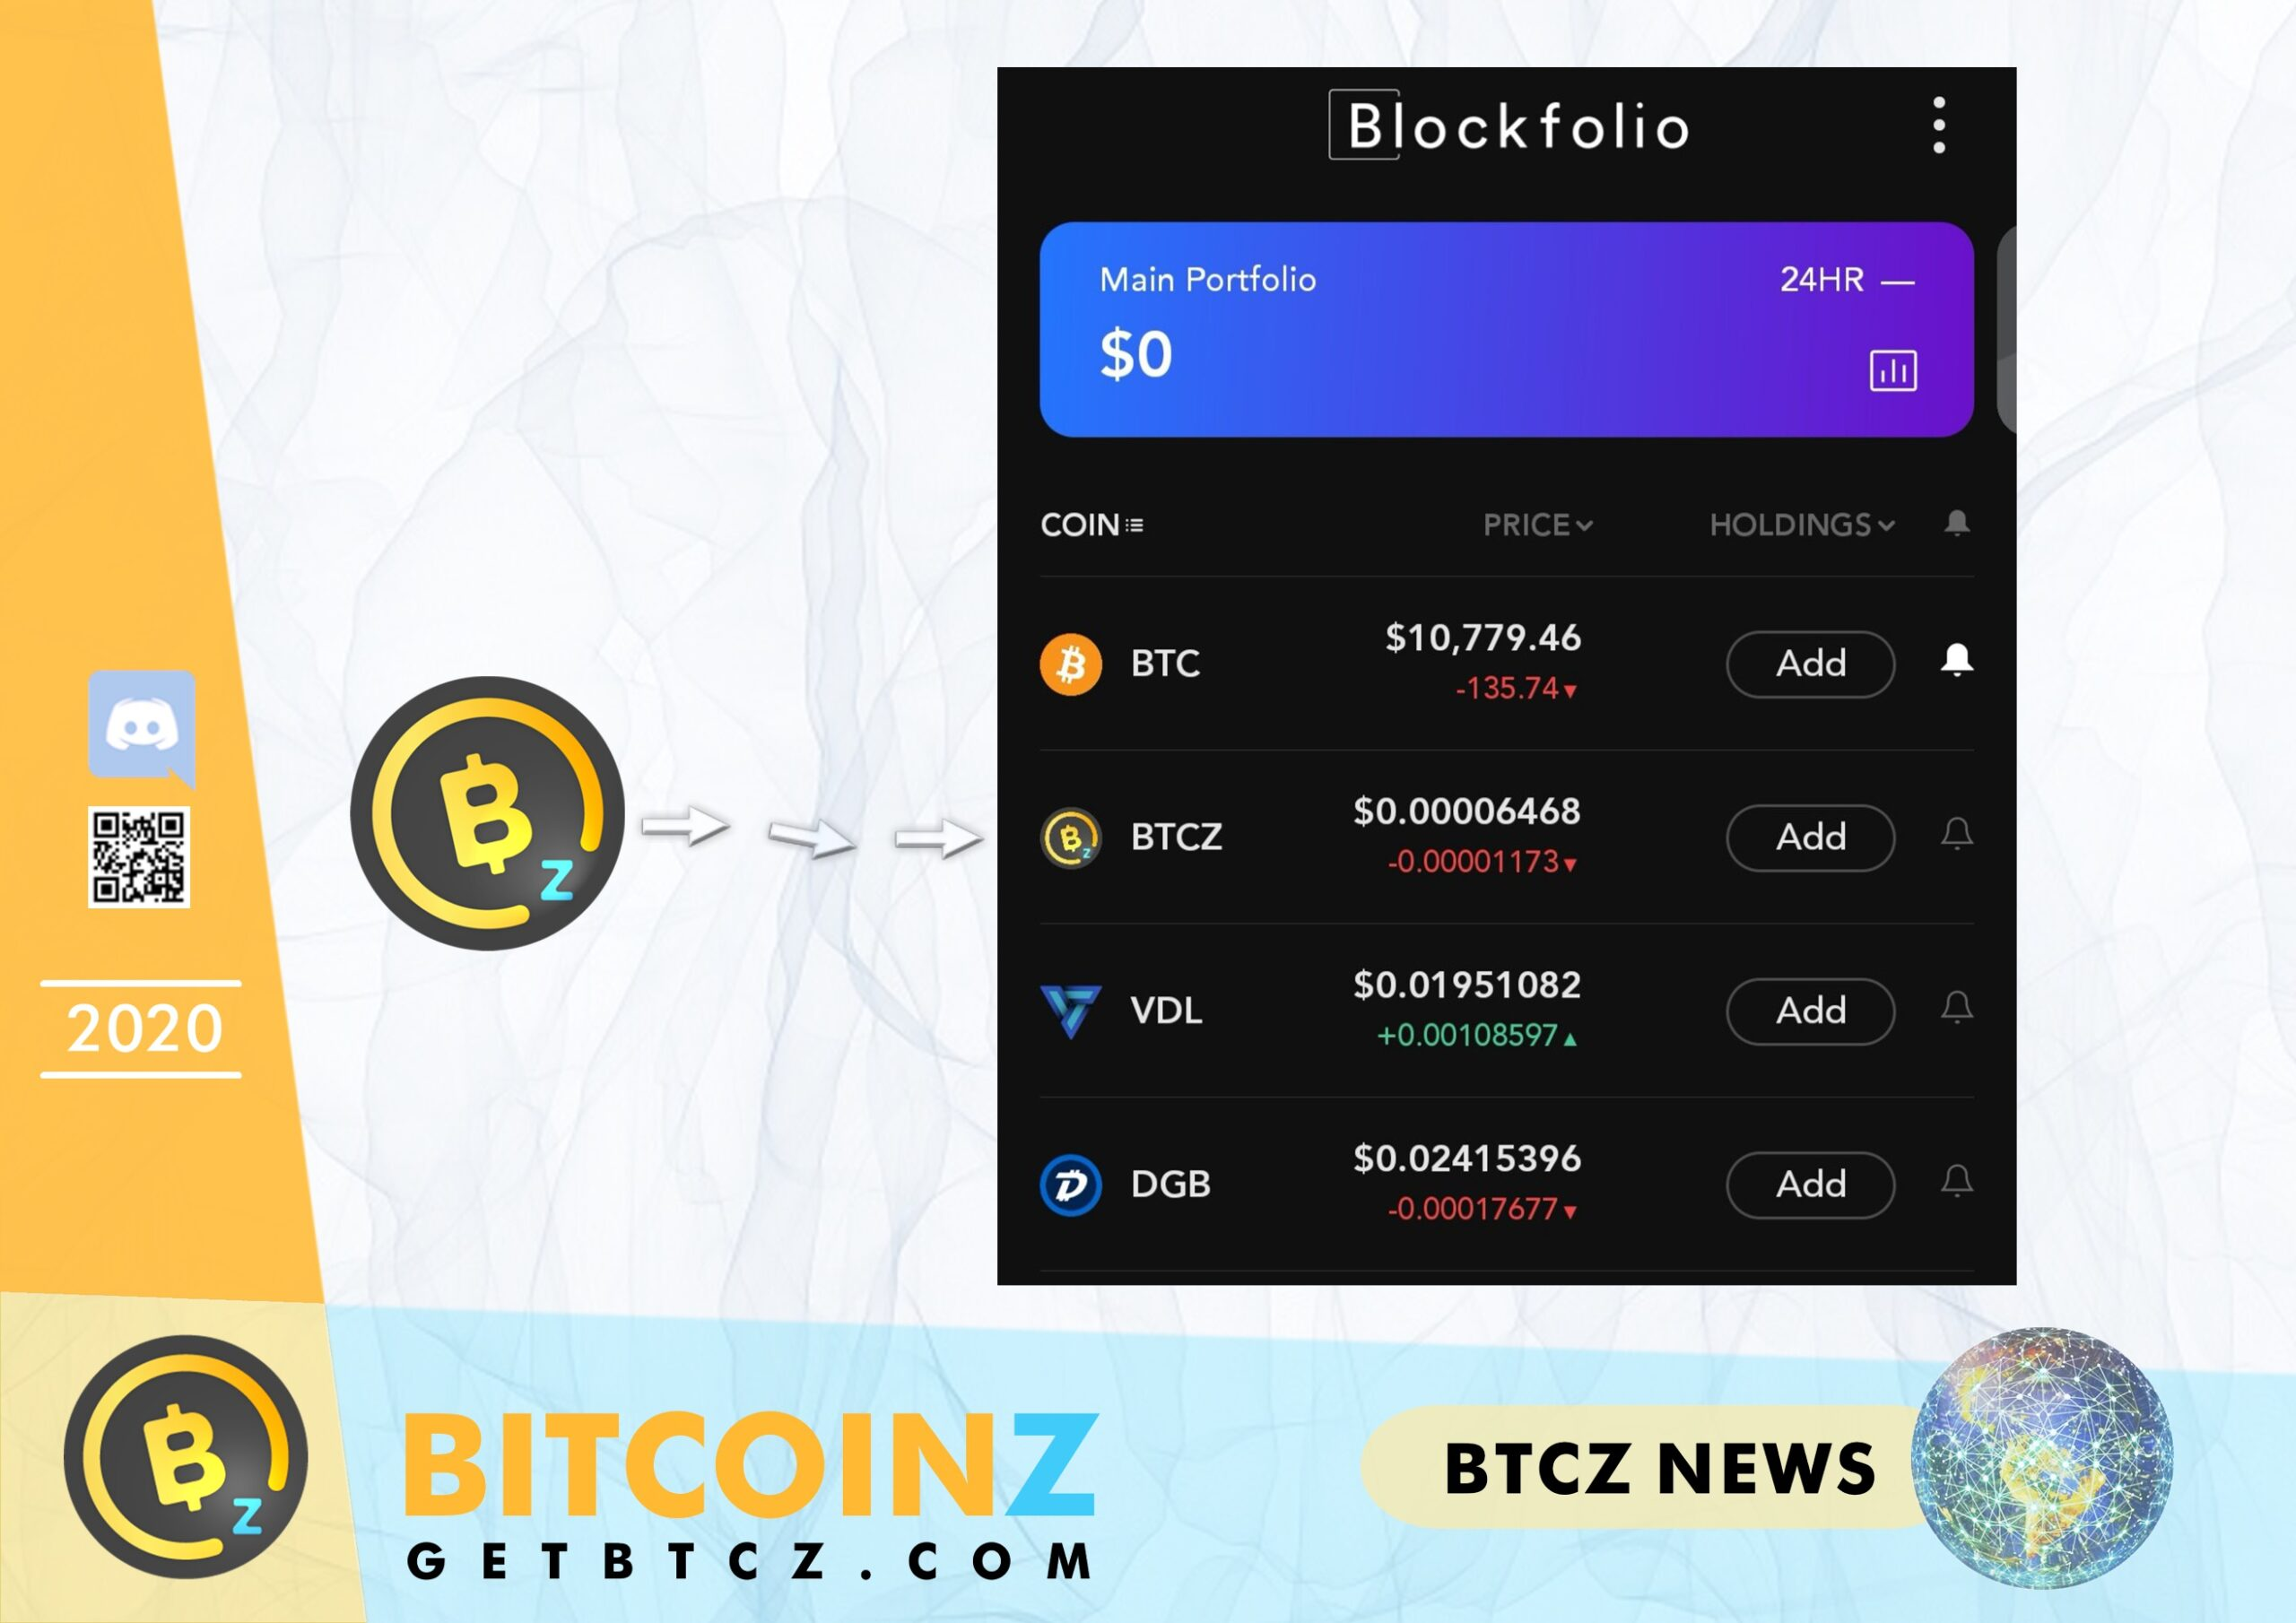 BITCOINZ logo is fixed in Blockfolio!